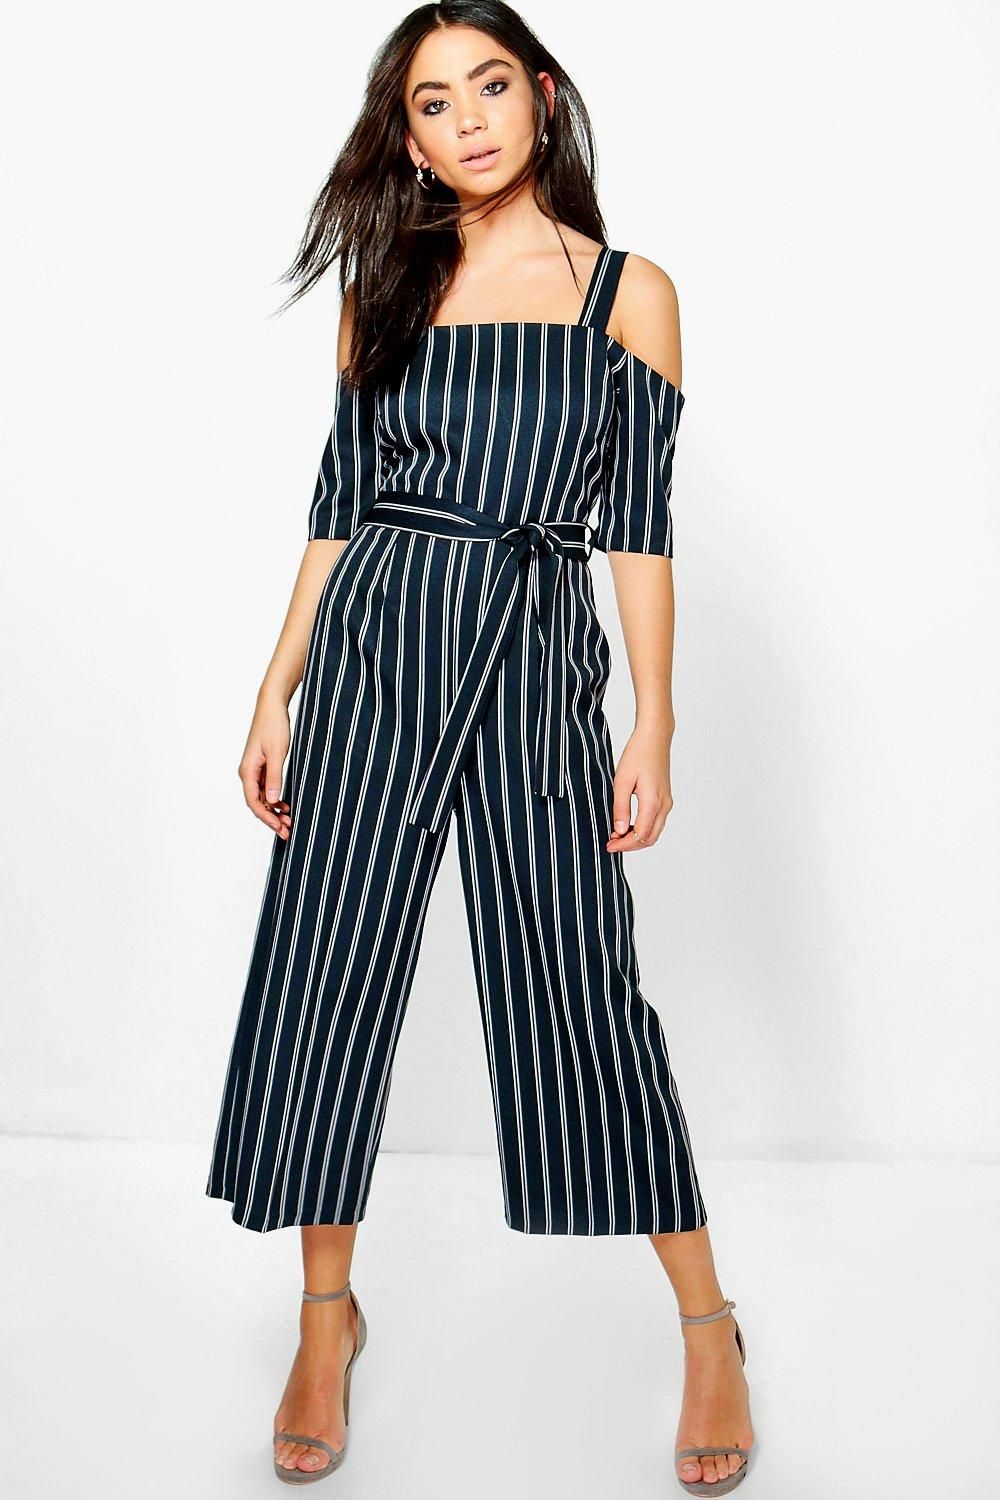 0206a240d21 Click here to find out about the Kimy Cold Shoulder Culotte Pinstripe  Jumpsuit from Boohoo